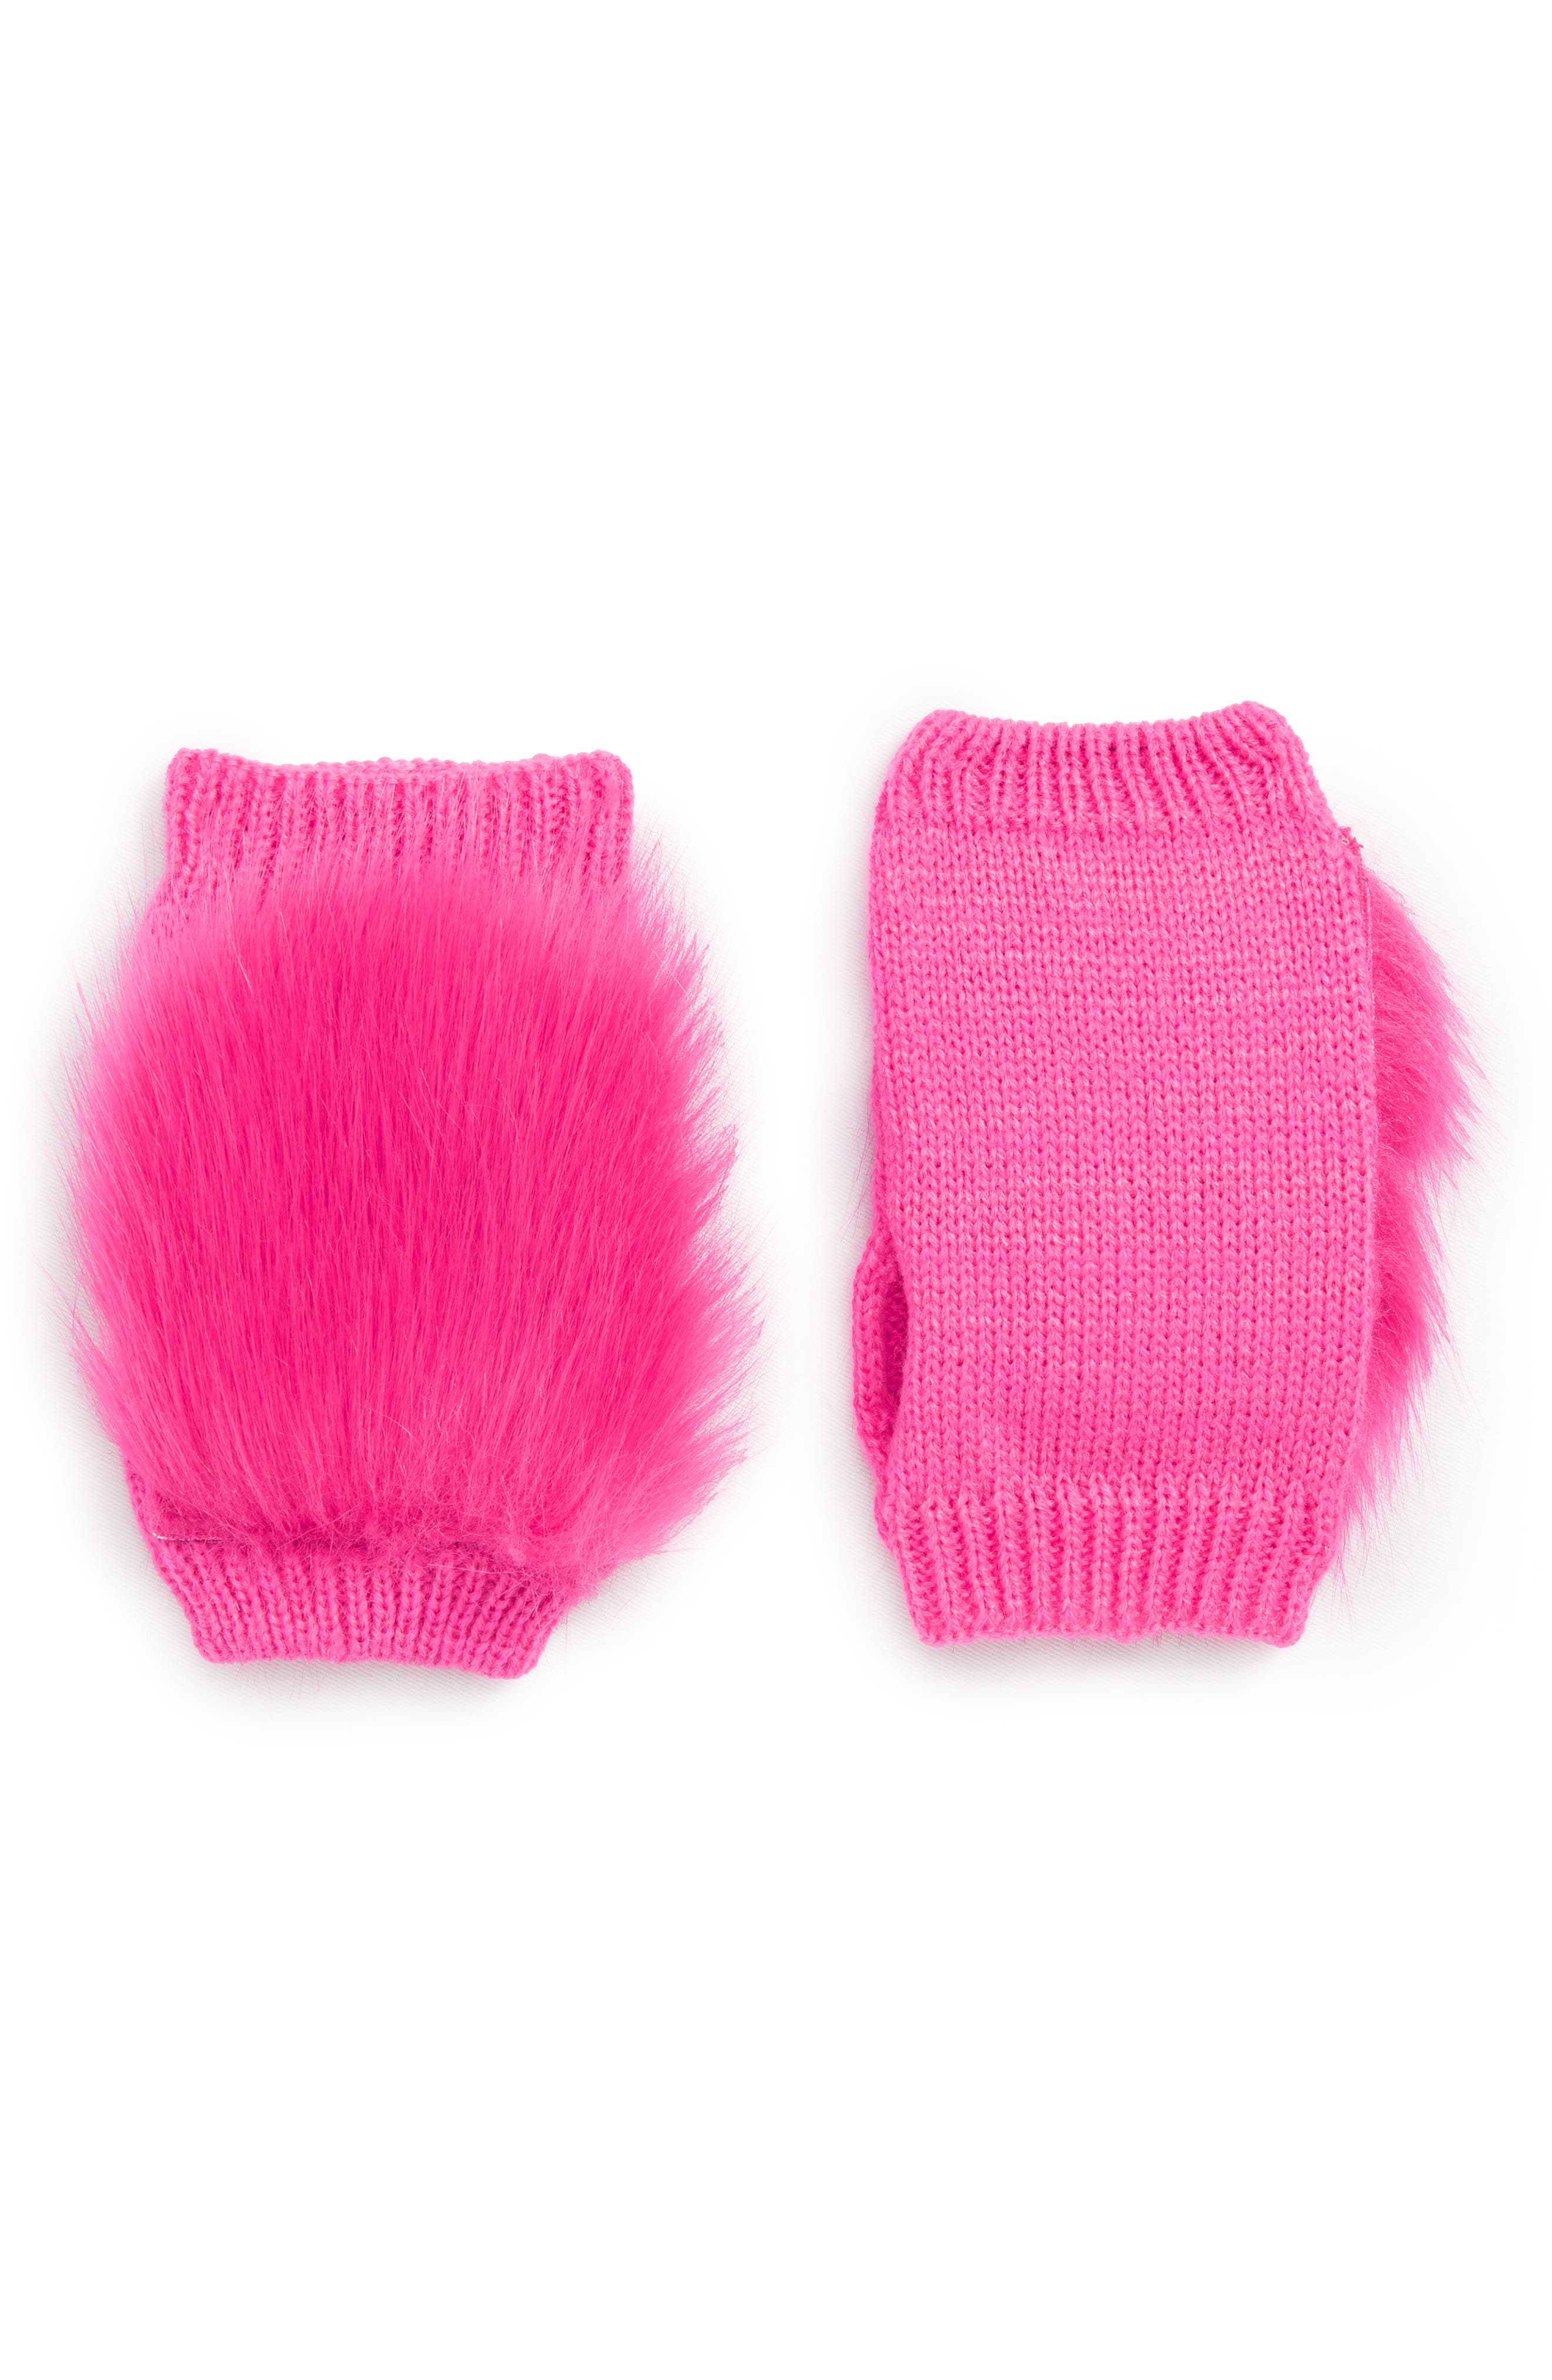 Faux Fur Hand Warmers,                         Main,                         color, PINK STORM